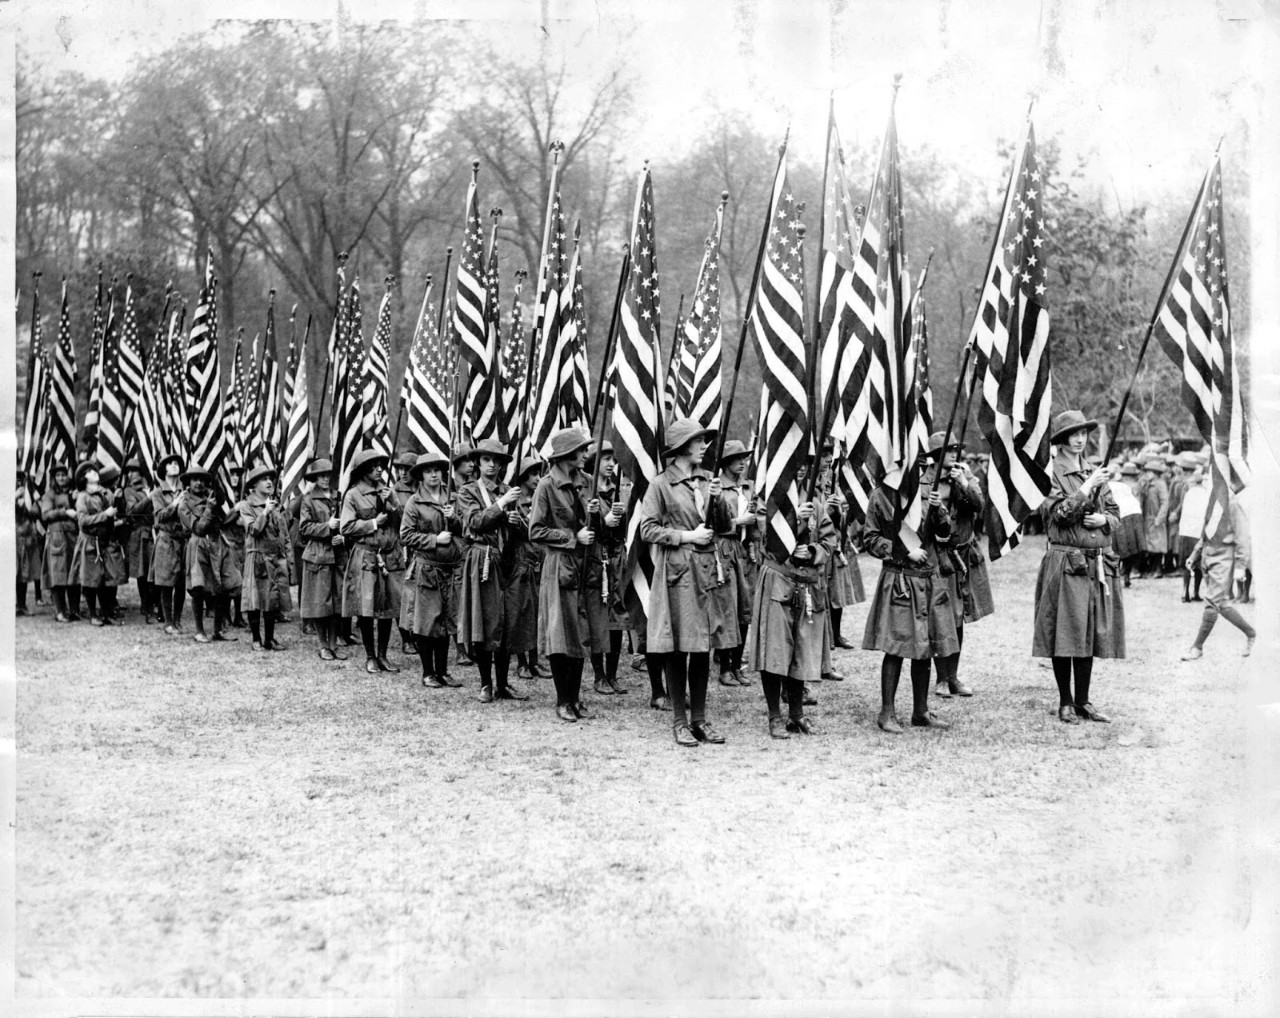 inauguration day reflecting on girl scouts history of